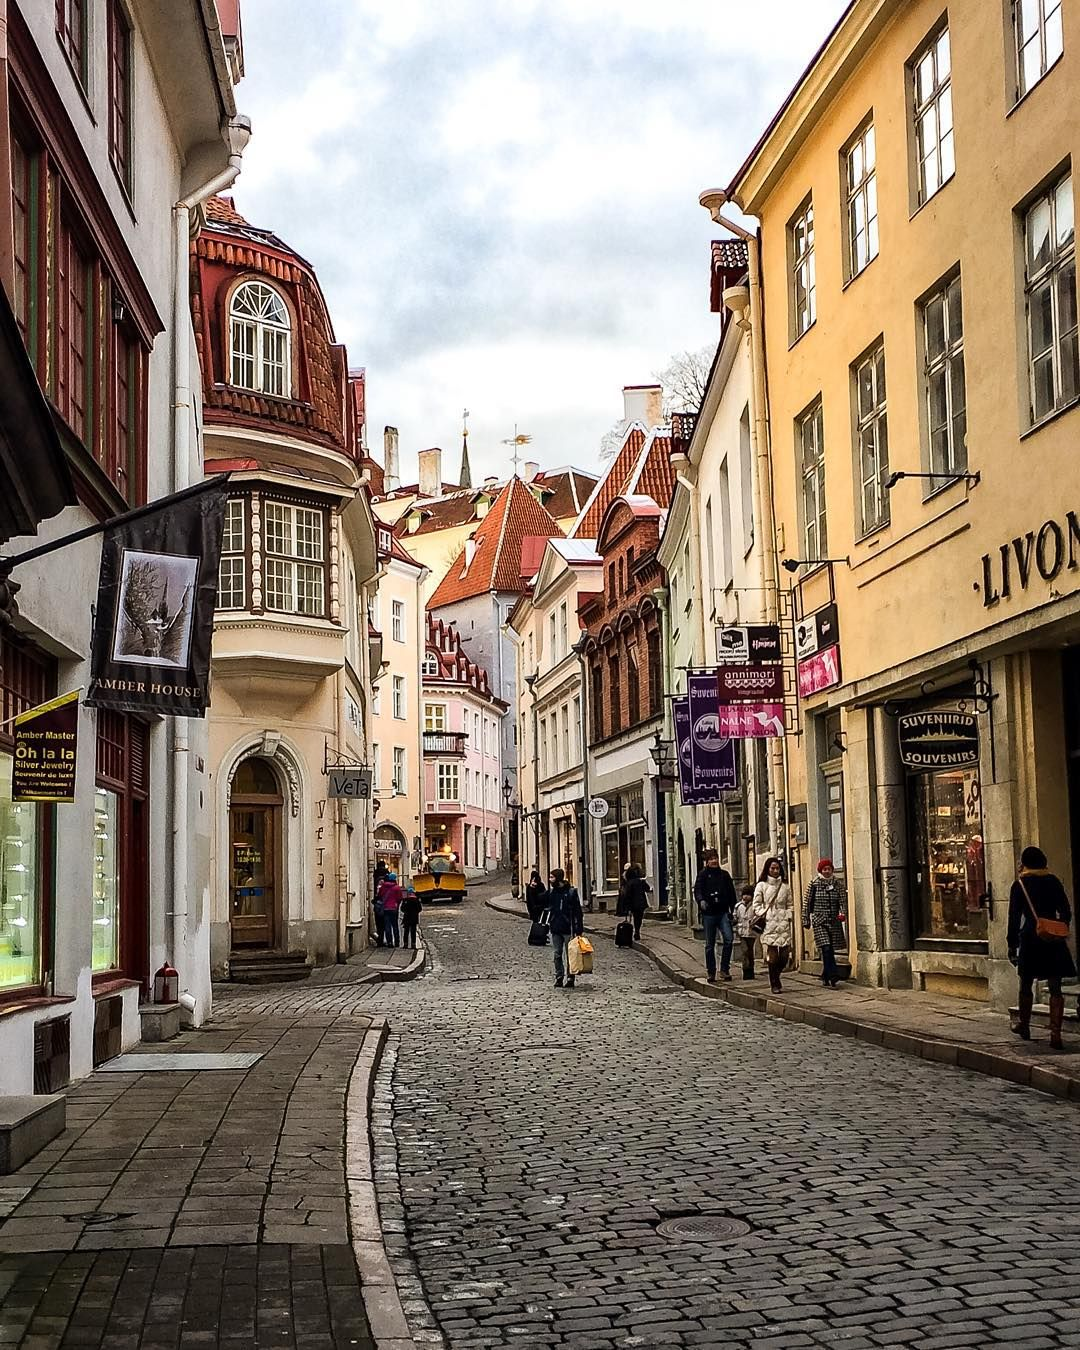 Our last stop was Tallinn Estonia. Probably the prettiest city we've been too! #Tallinn #Estonia #baltic #equationoflifetravel #travel #travelgram #instagram #instatravel #instapassport #medieval #instagood #instamood #instadaily #wanderlust #amazing #beautiful #pretty #love #nature #life #city #cold #winter #europe #street #architecture #vacation #trip by equationoflife